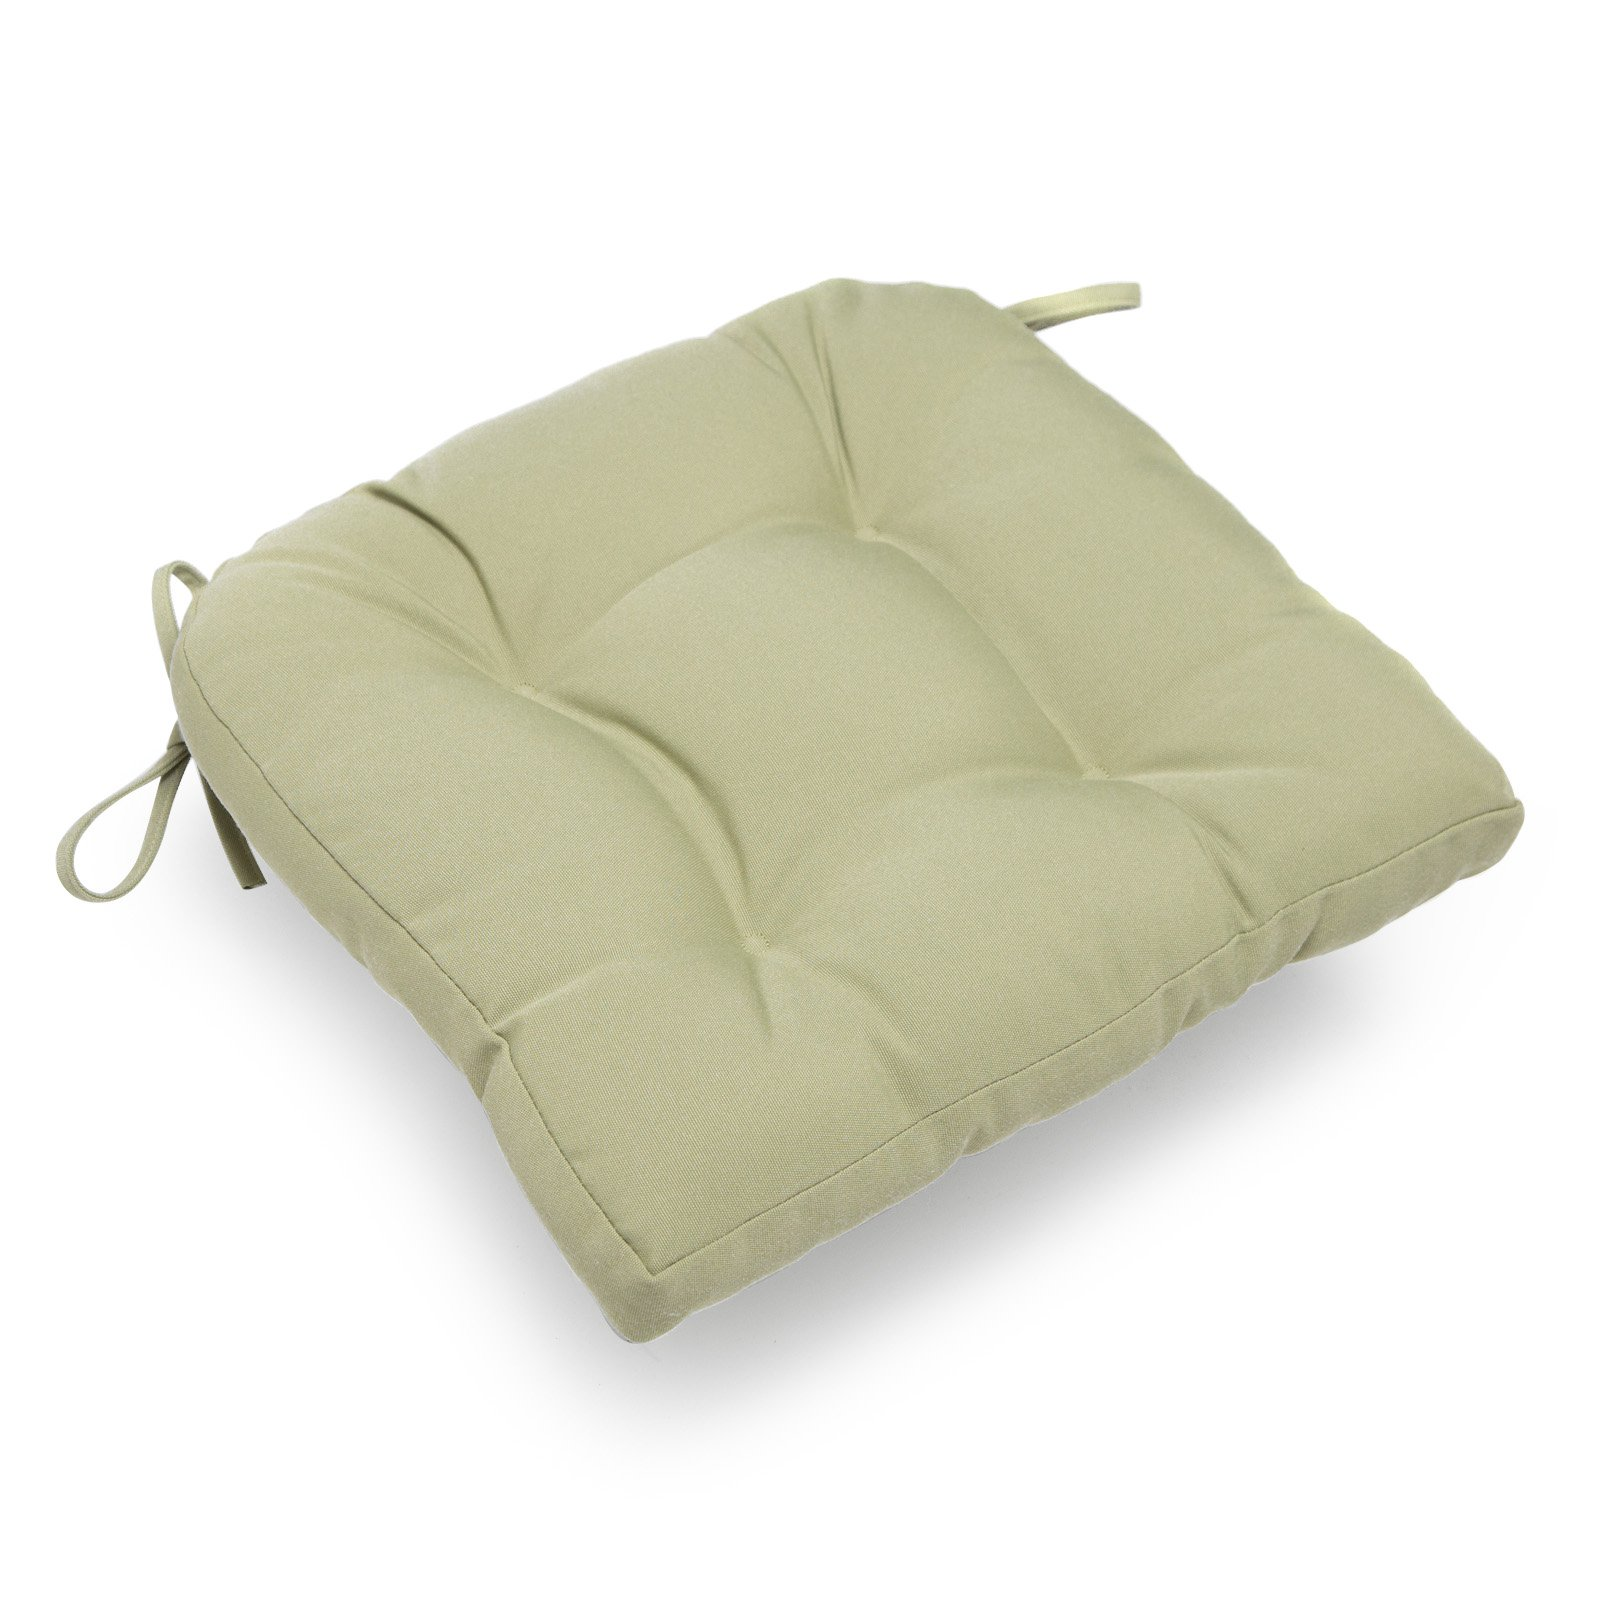 deauville 16 x 16 in. tufted kitchen chair cushion - walmart